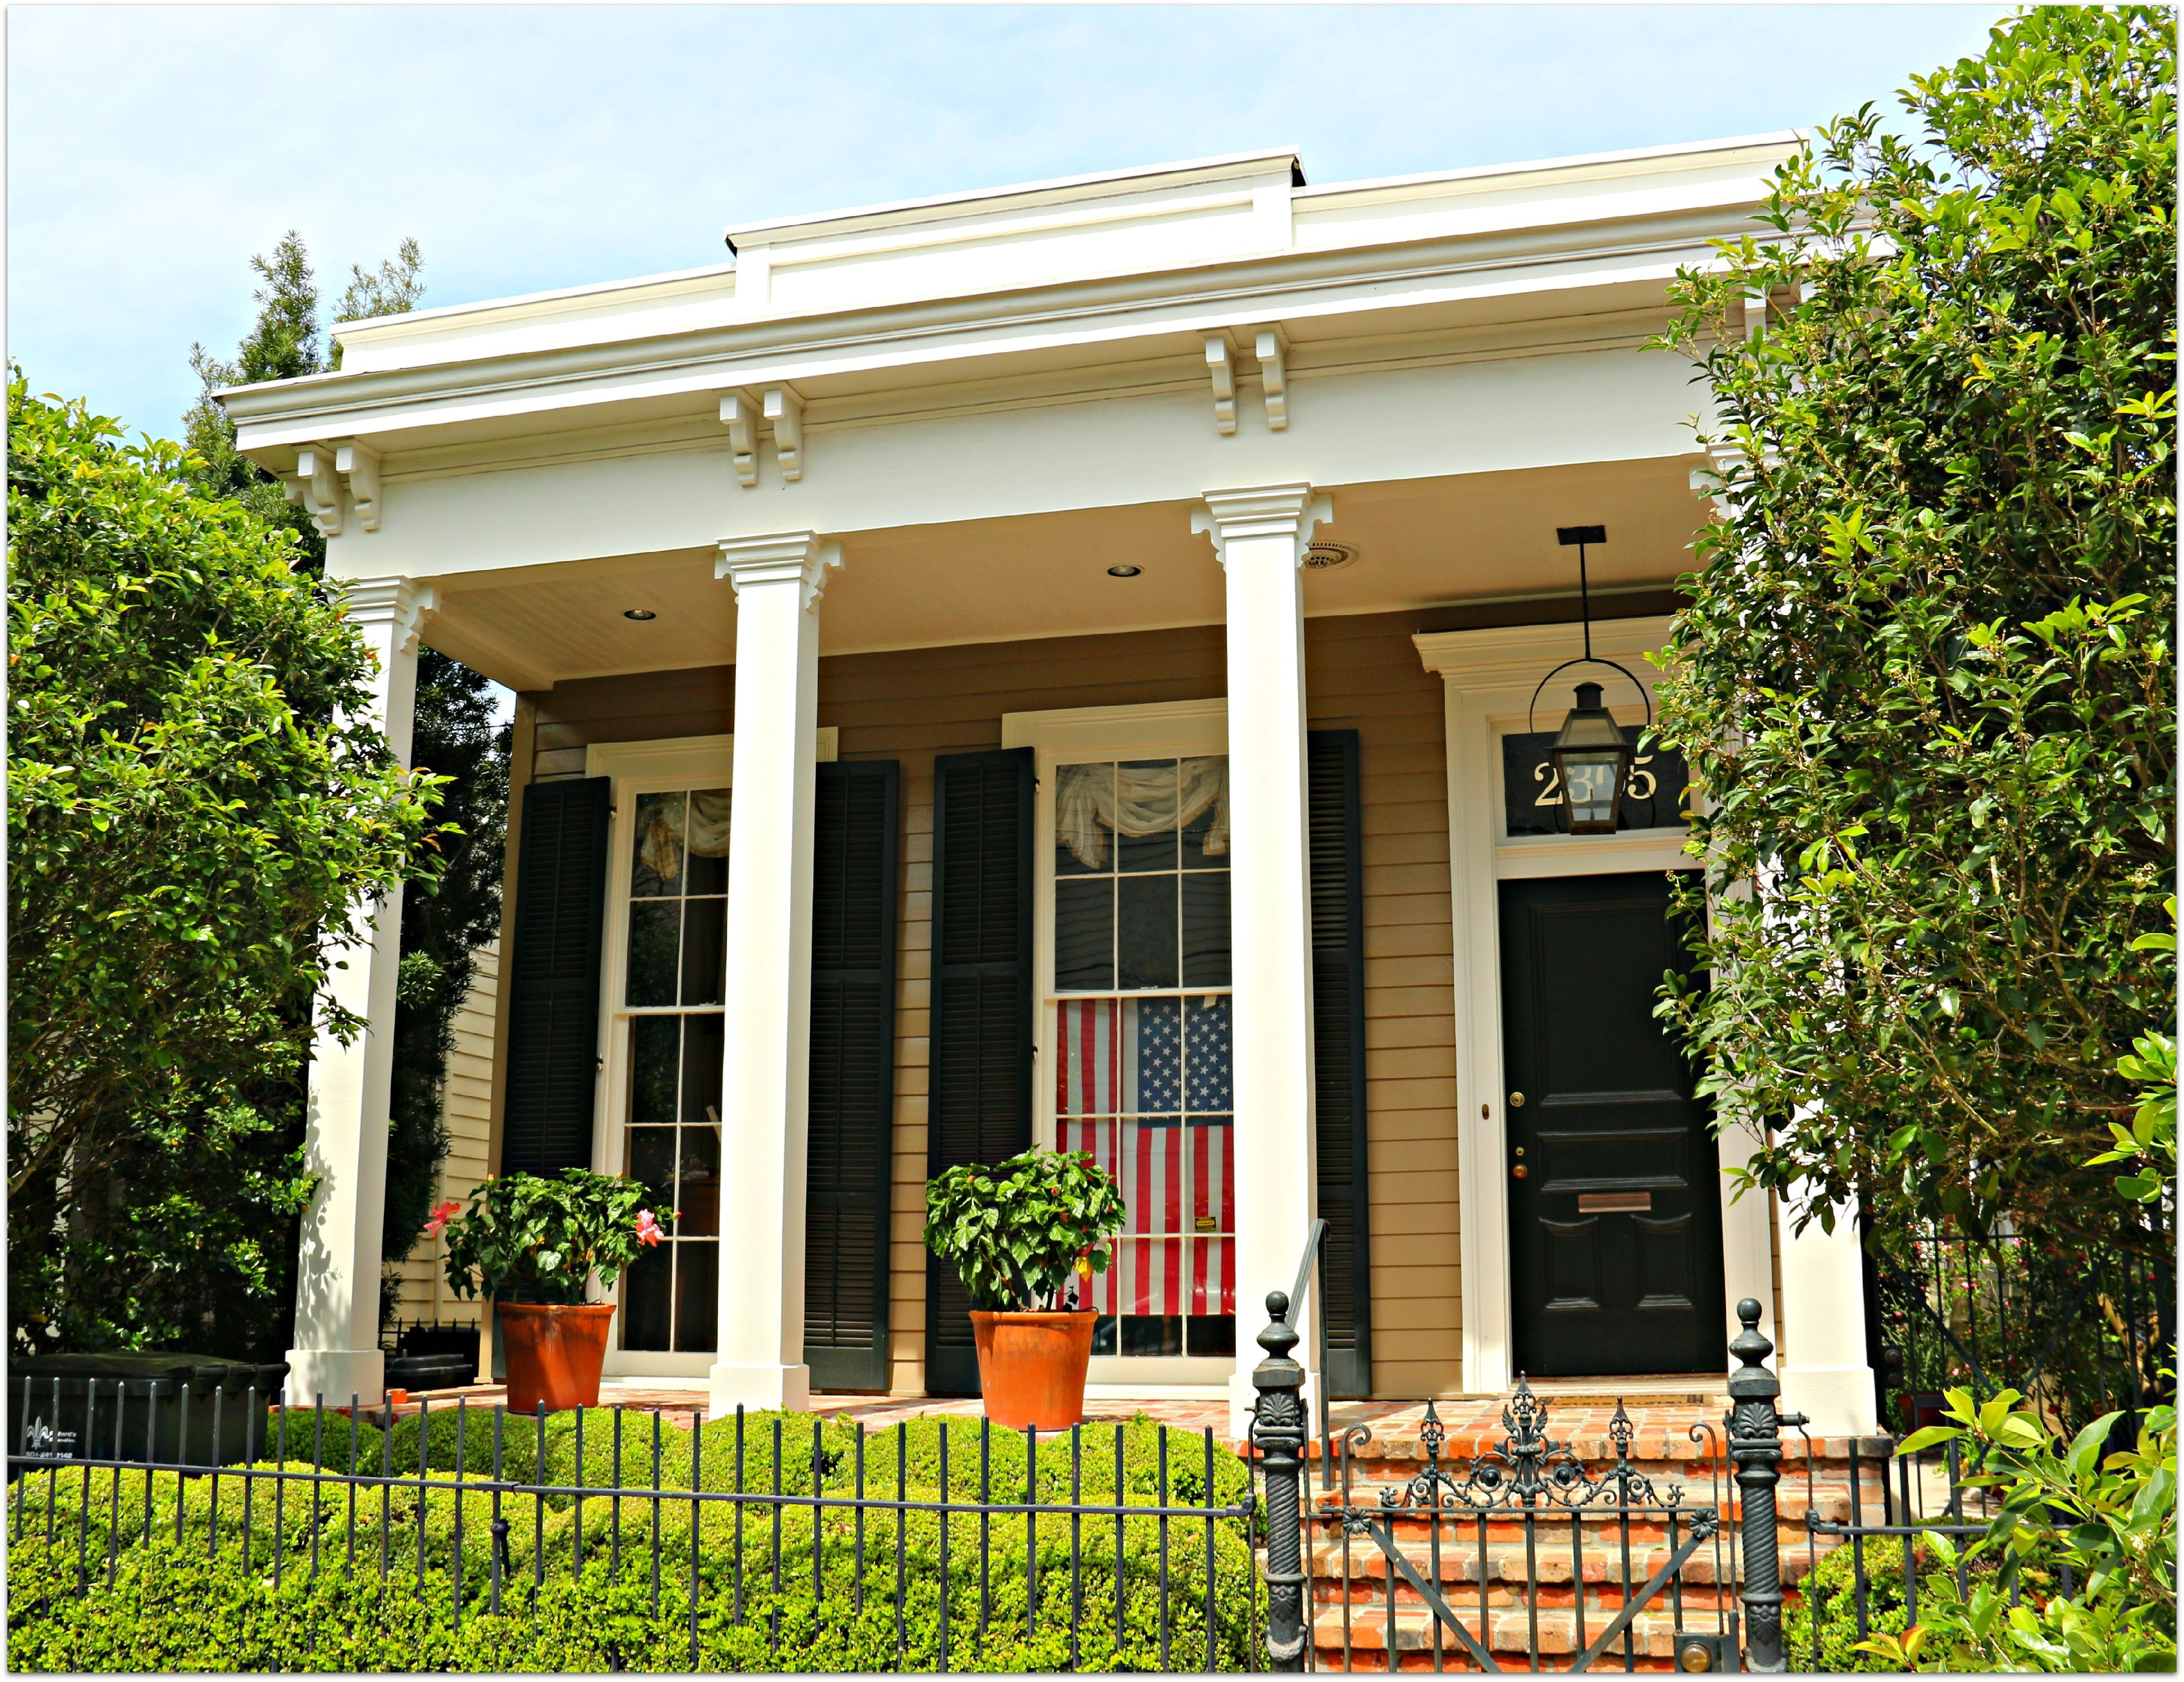 New Orleans Garden District Homes | Favorite Places & Spaces ...